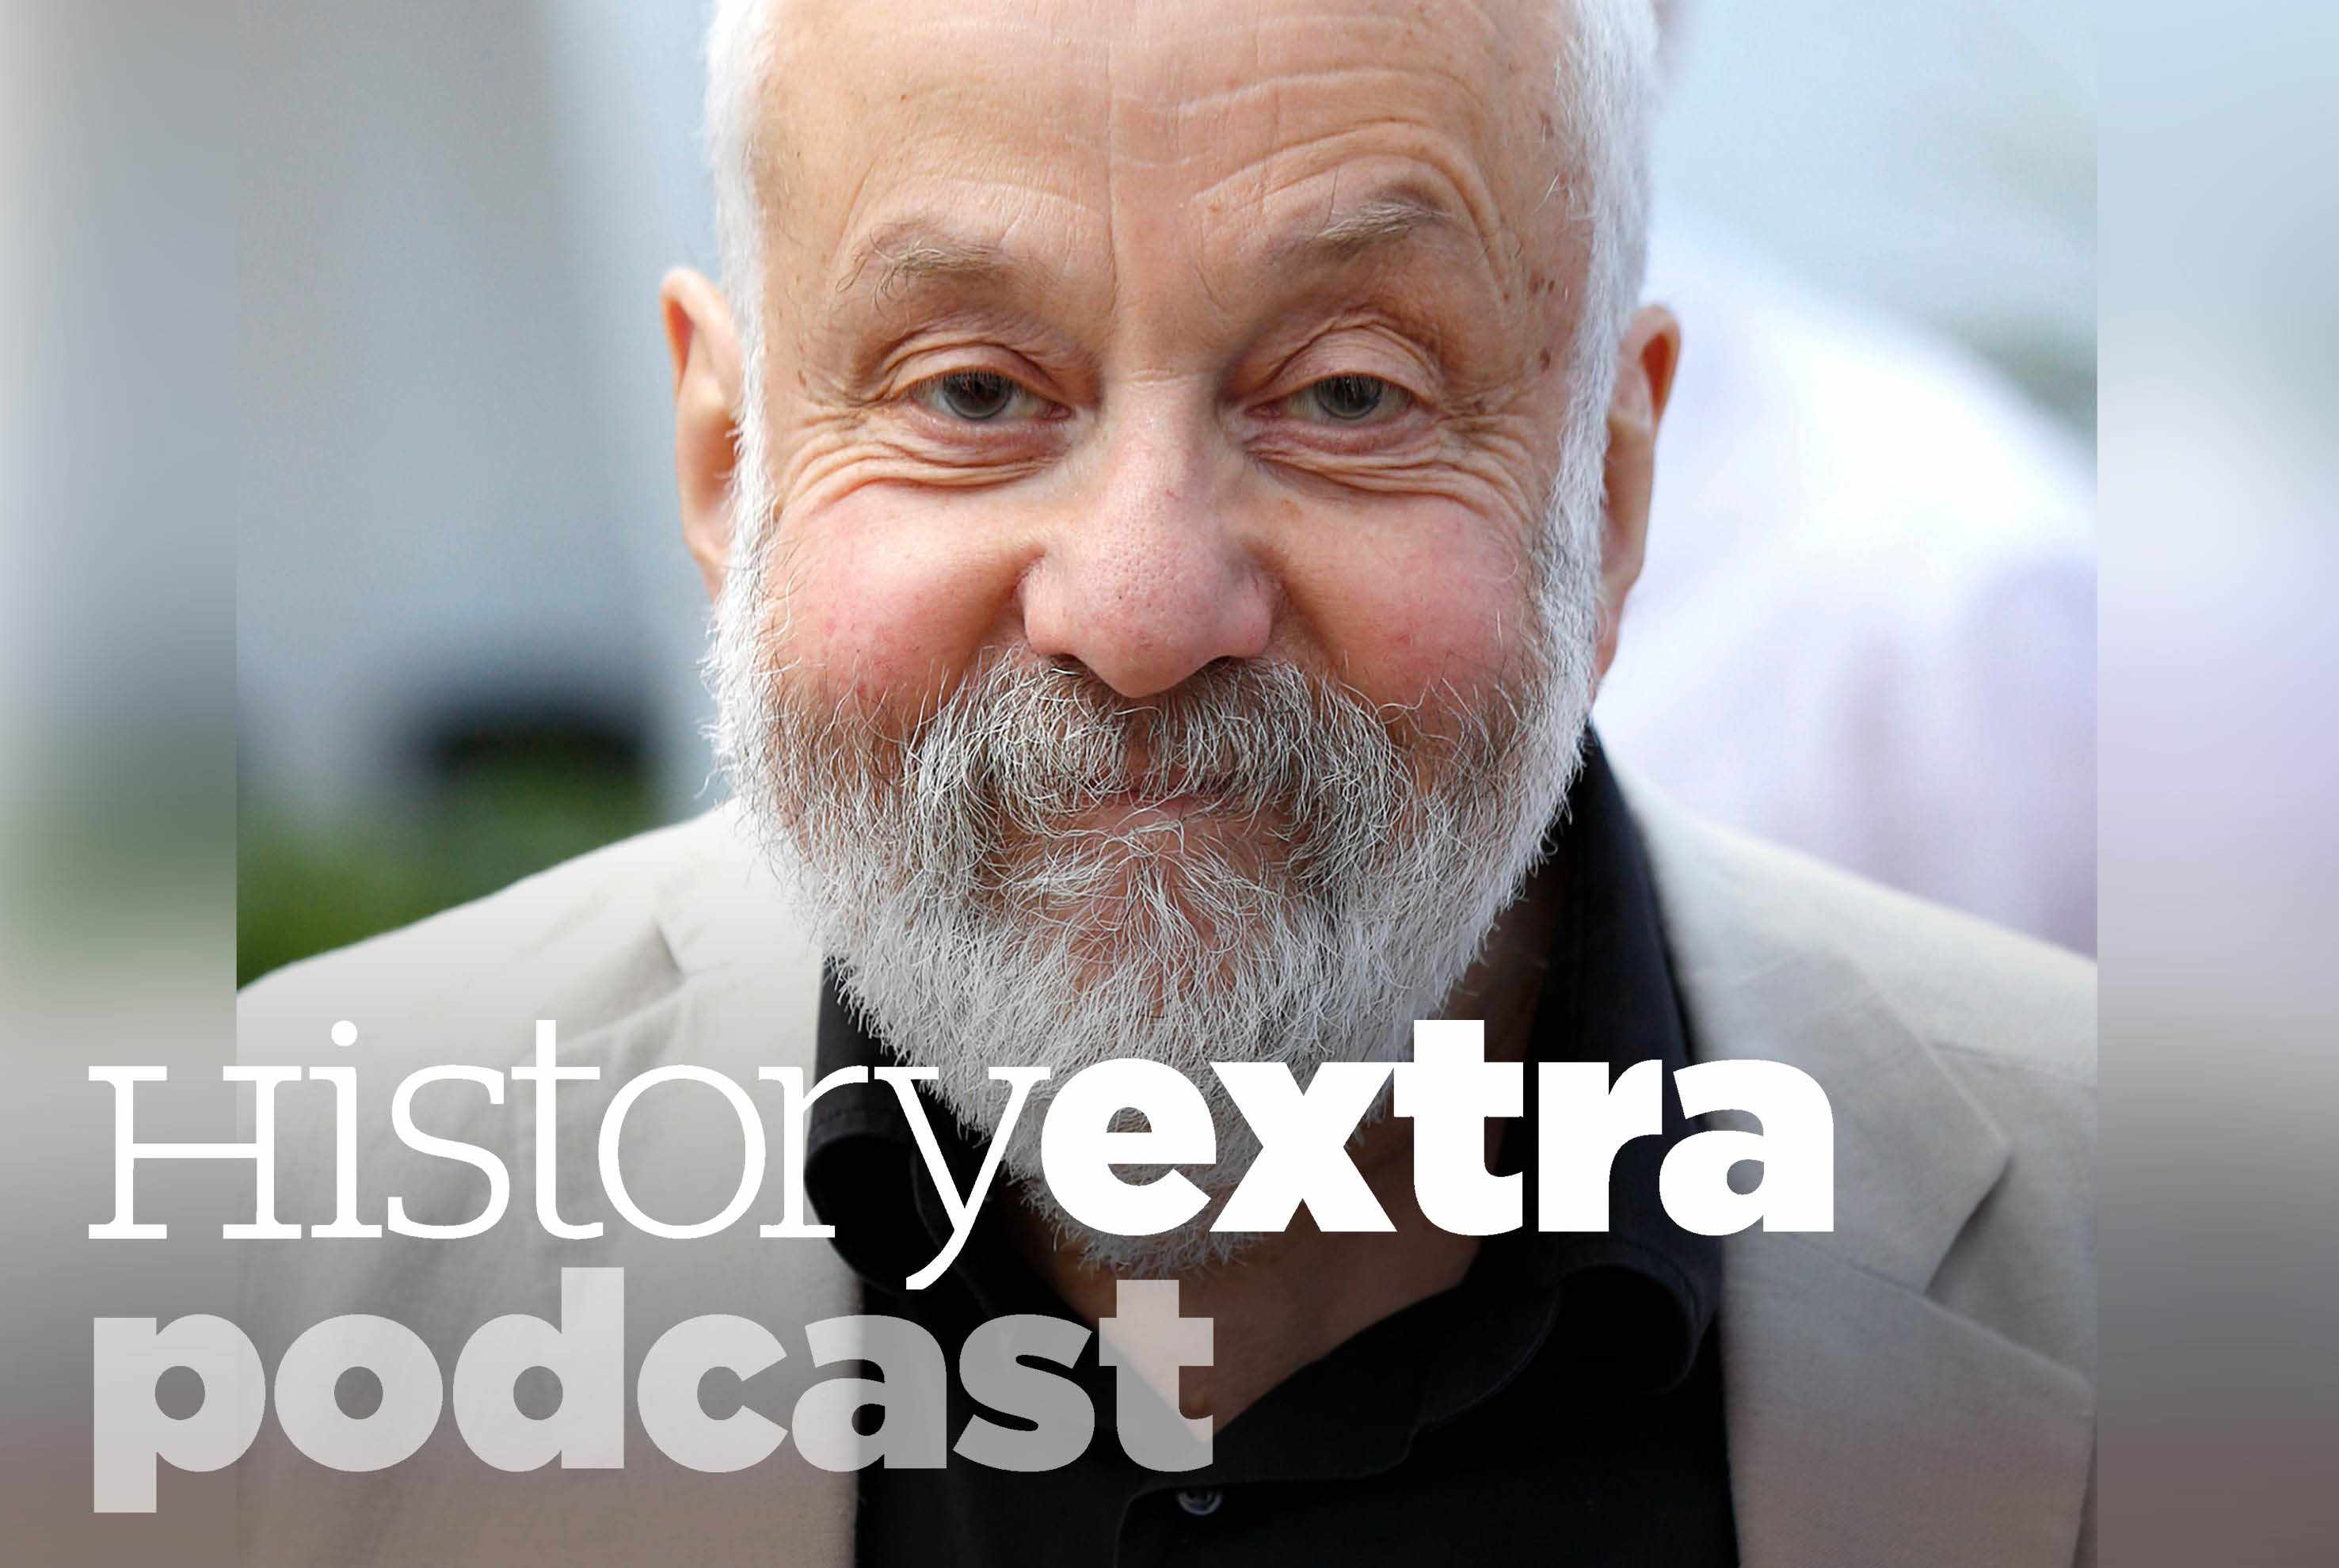 Mike Leigh at the 67th Cannes Film Festival in 2014. (Photo by dpa picture alliance / Alamy Stock Photo)